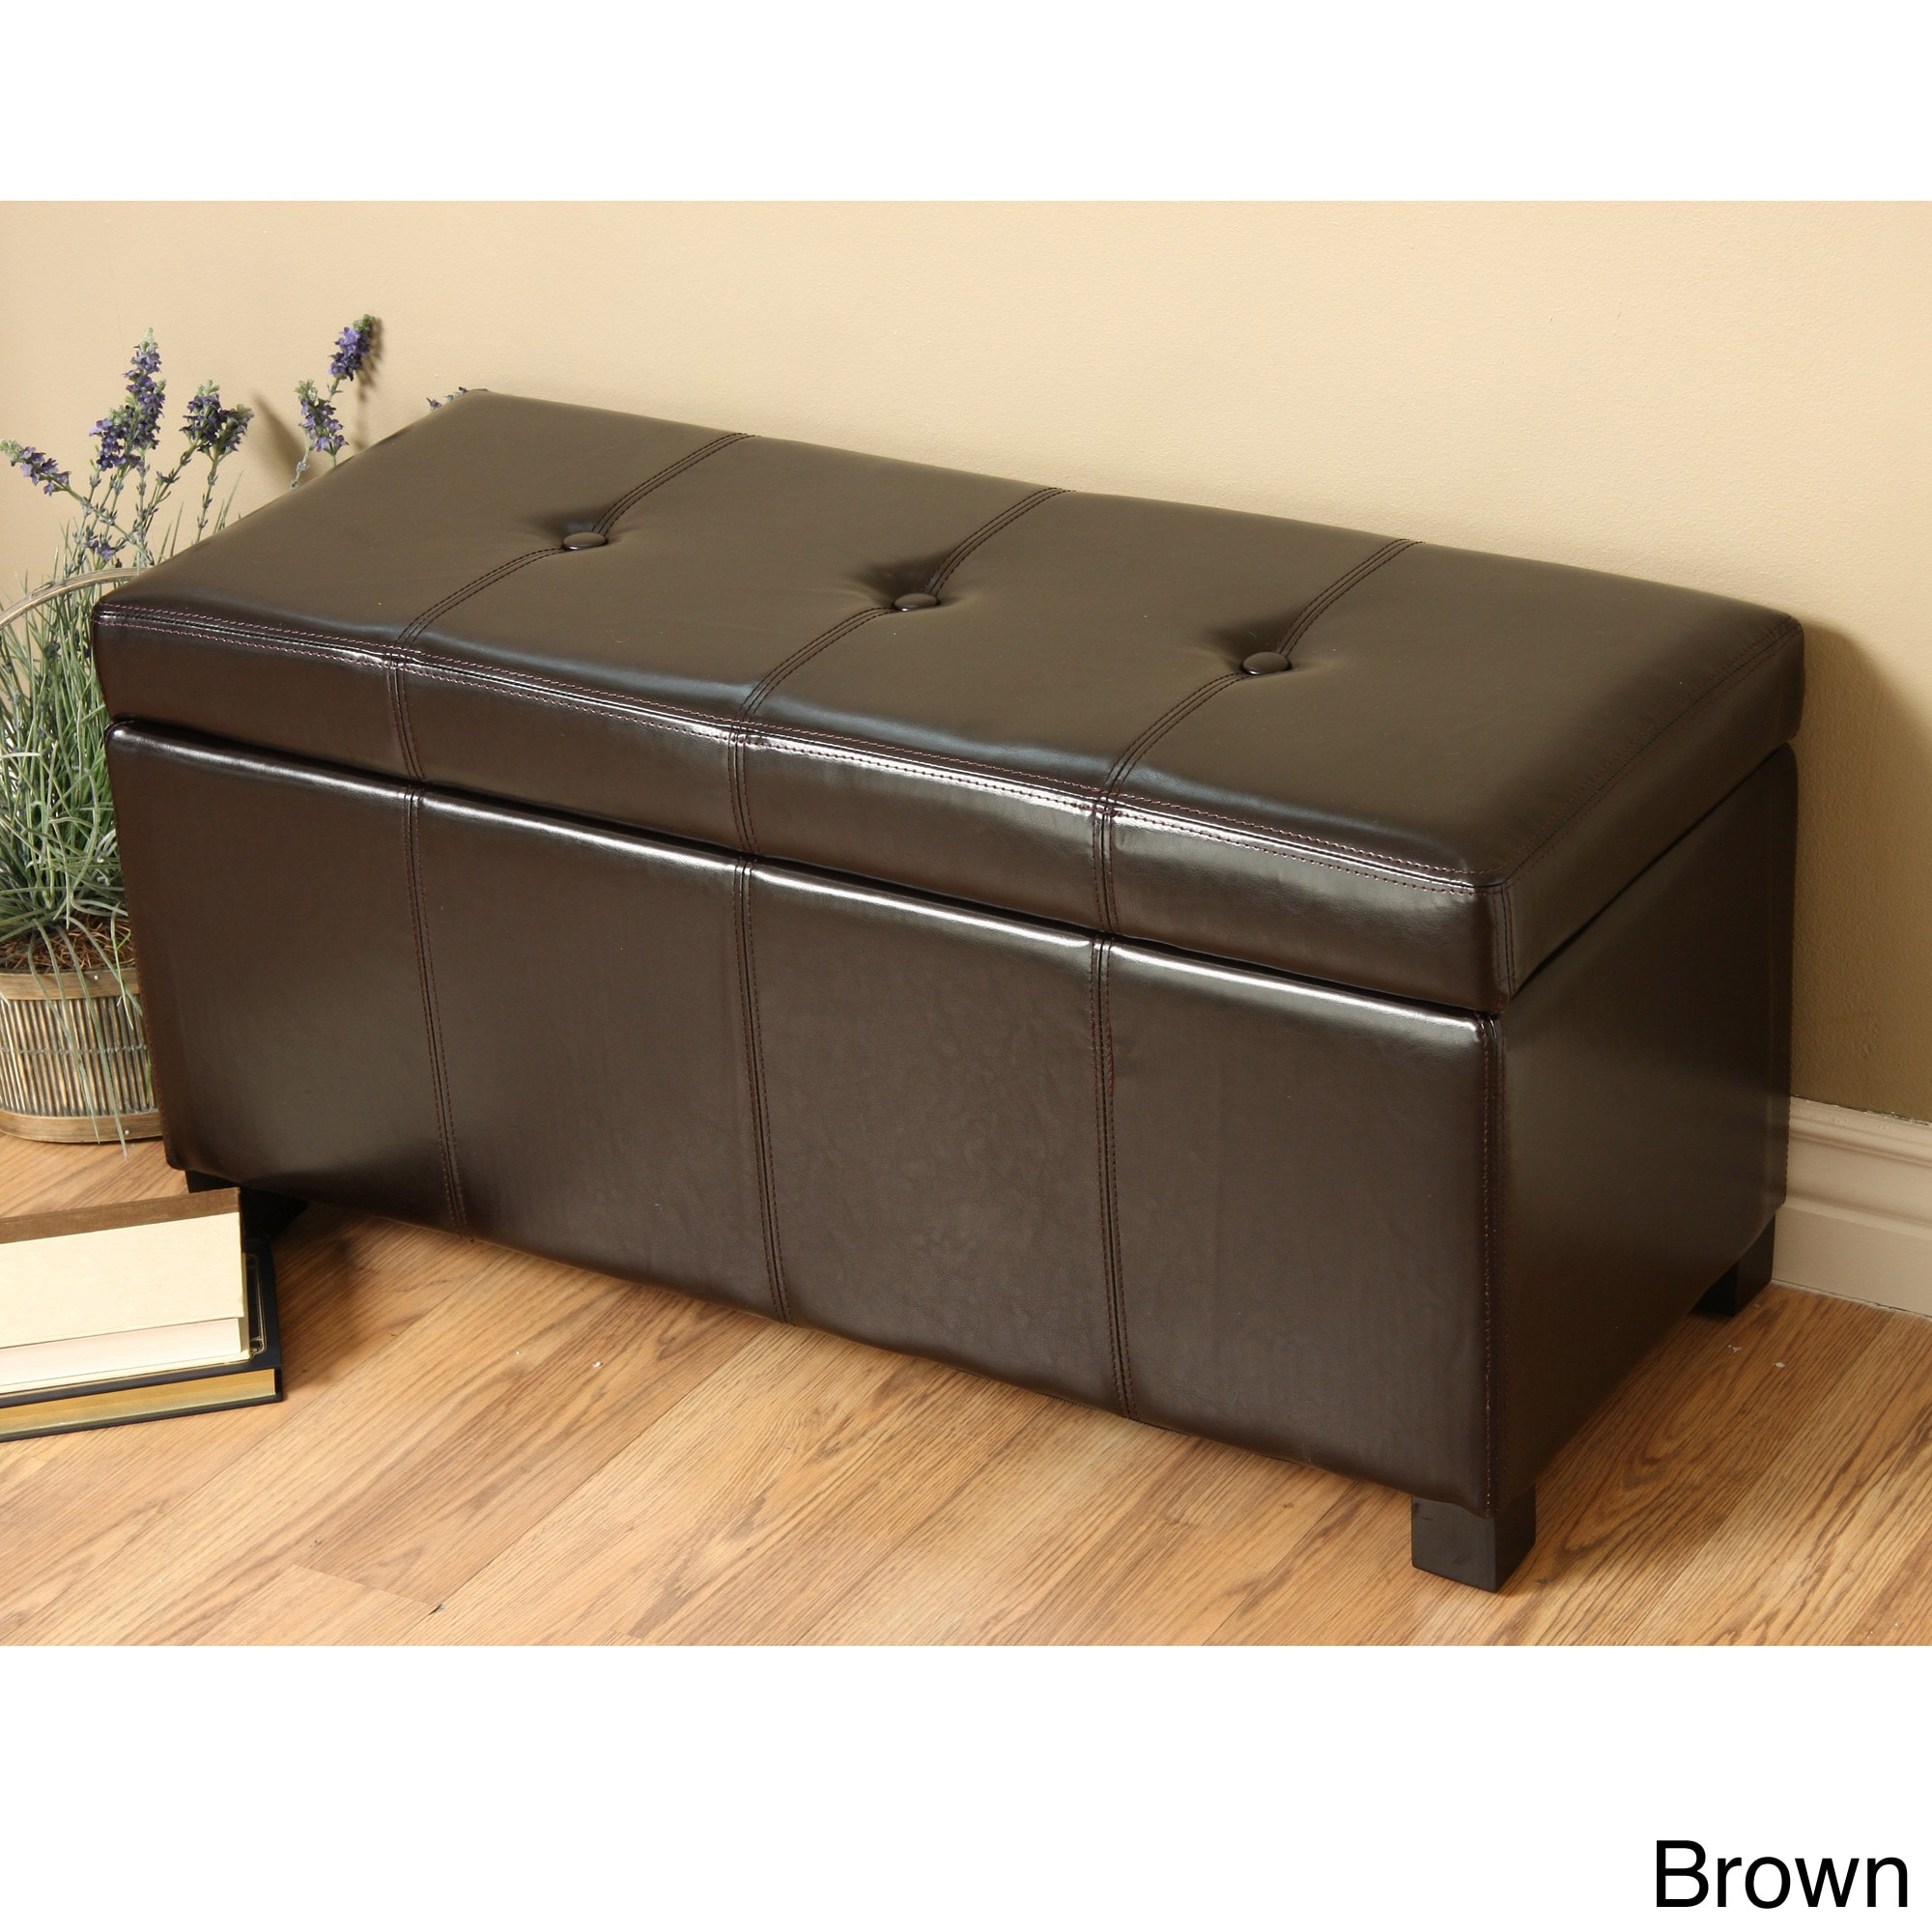 New Modern Faux Leather Storage Bench Living Room Accent Furniture Great Home Ebay